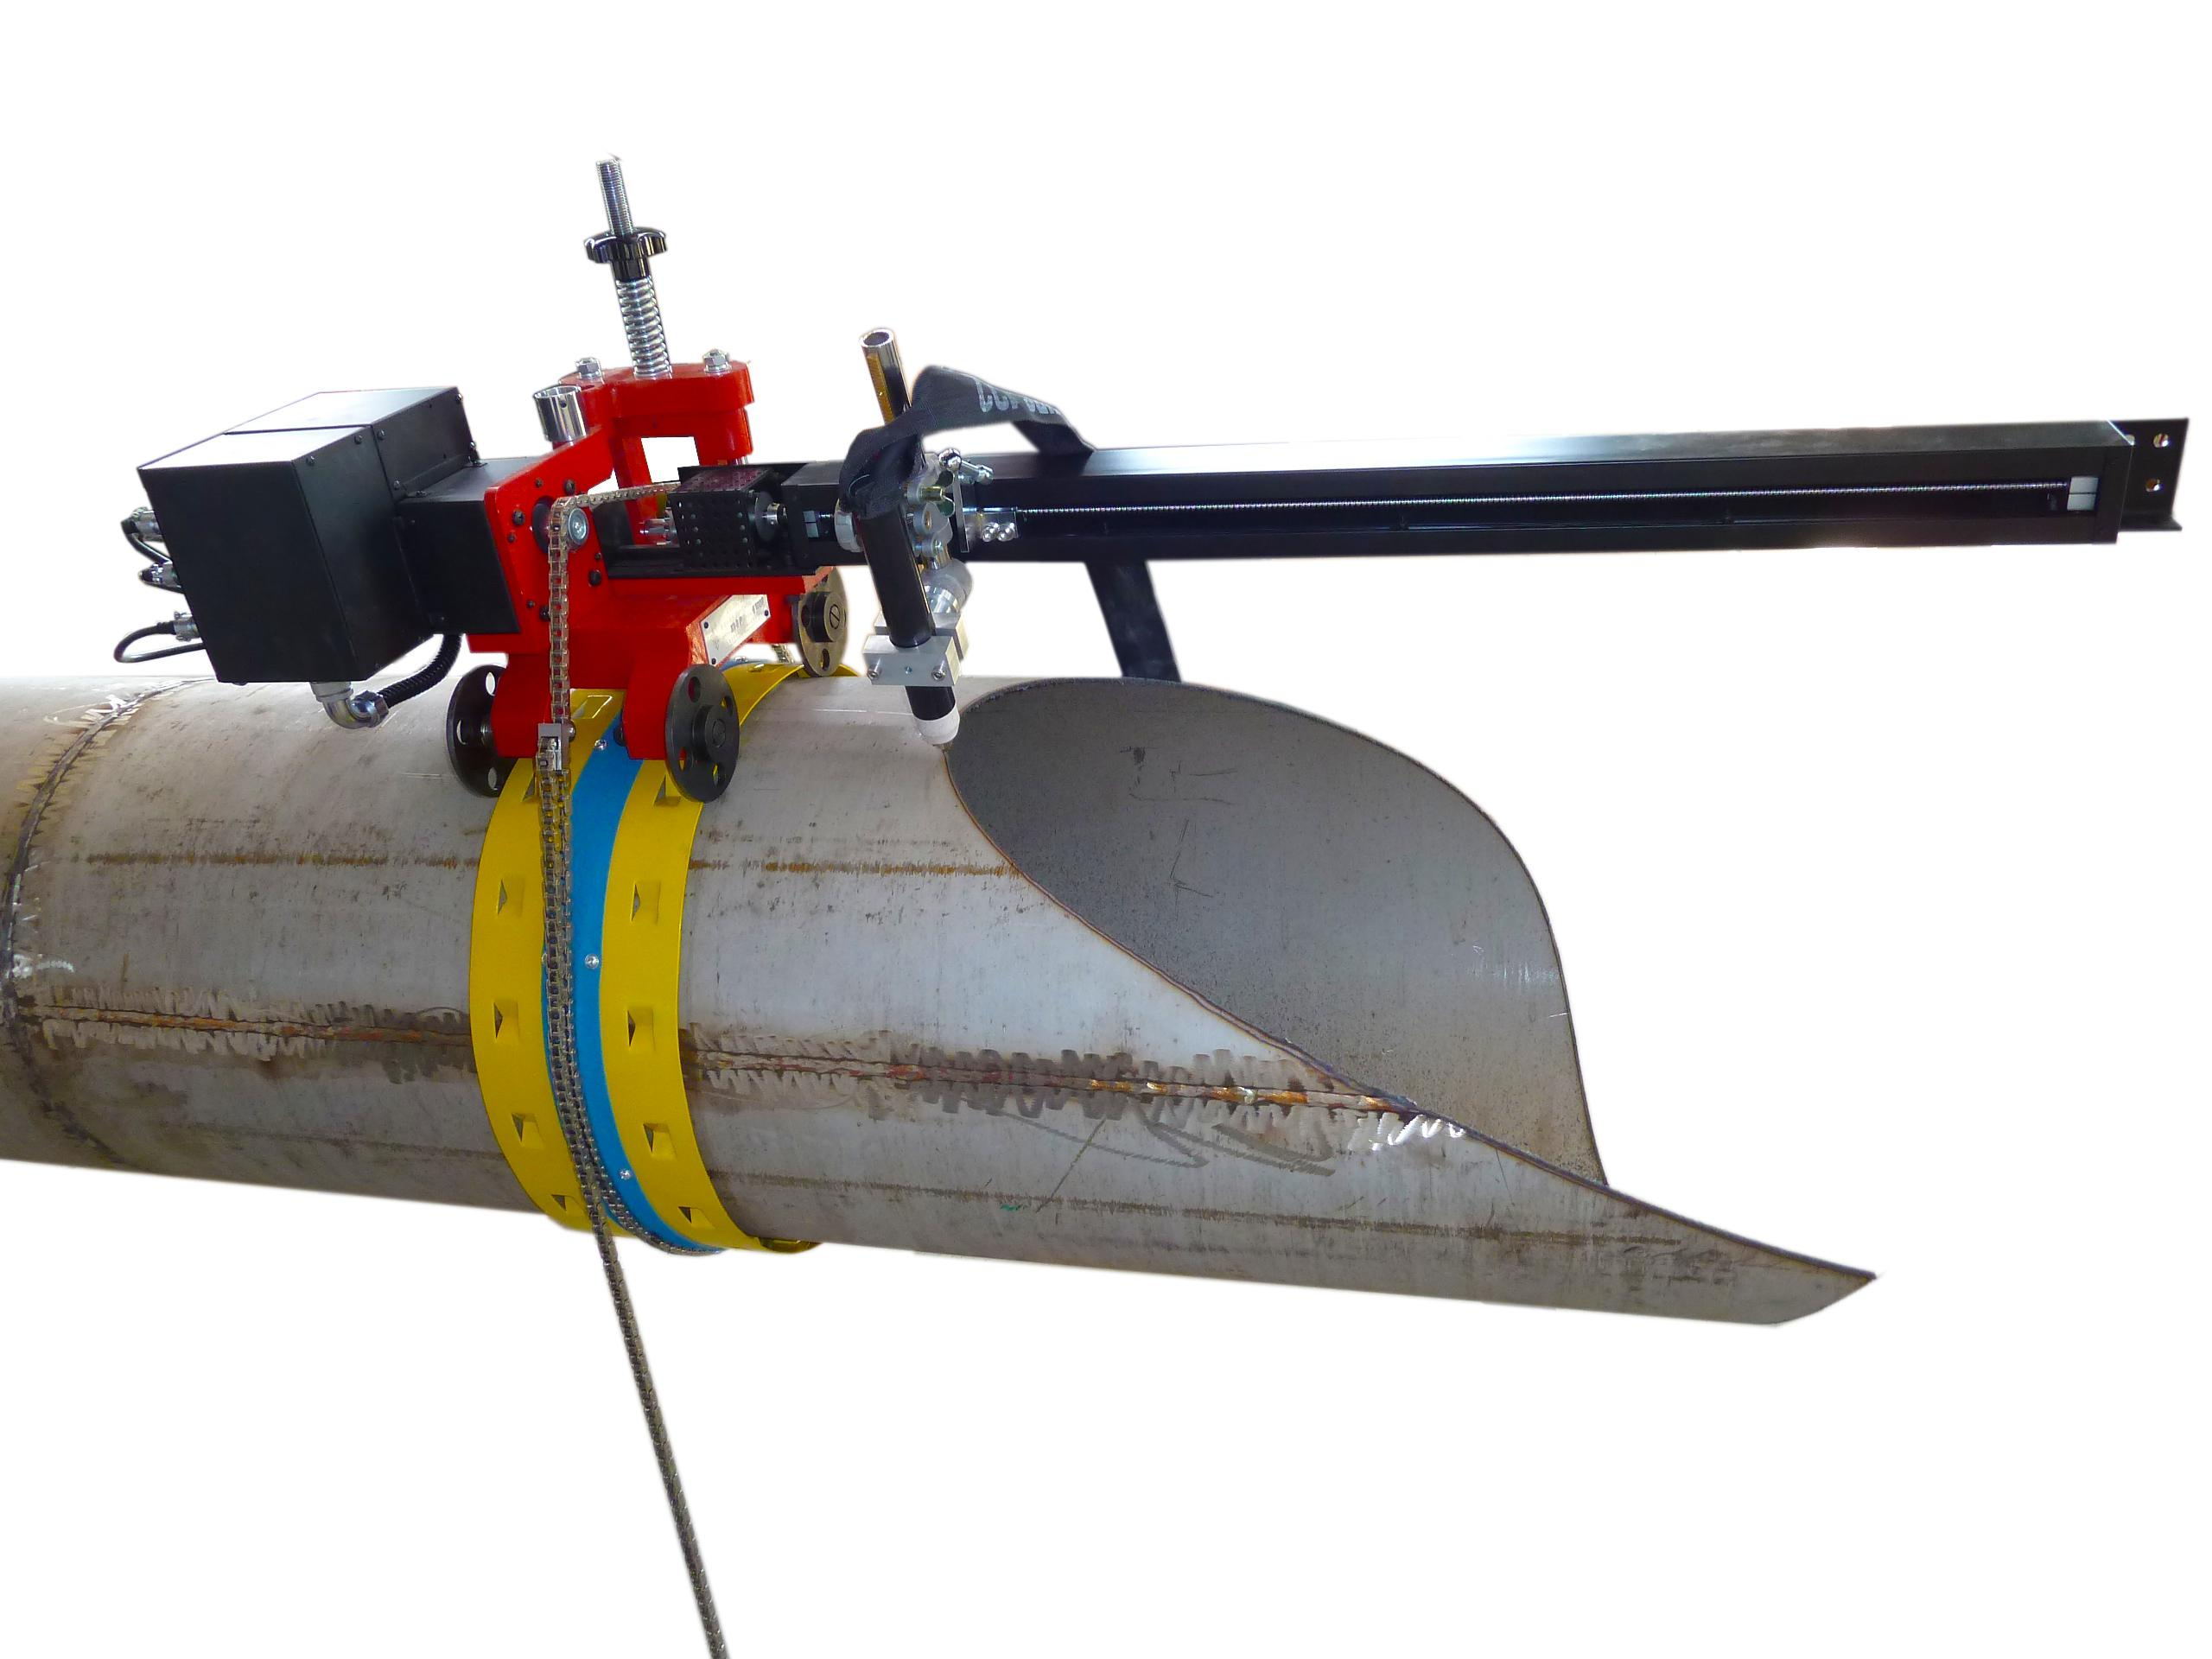 Portable NC Pipe Profile Cutting Machines-ThinkPipe,Pipe Cutting and Beveling Machines,Pipe Profile Cutting and Beveling Machines